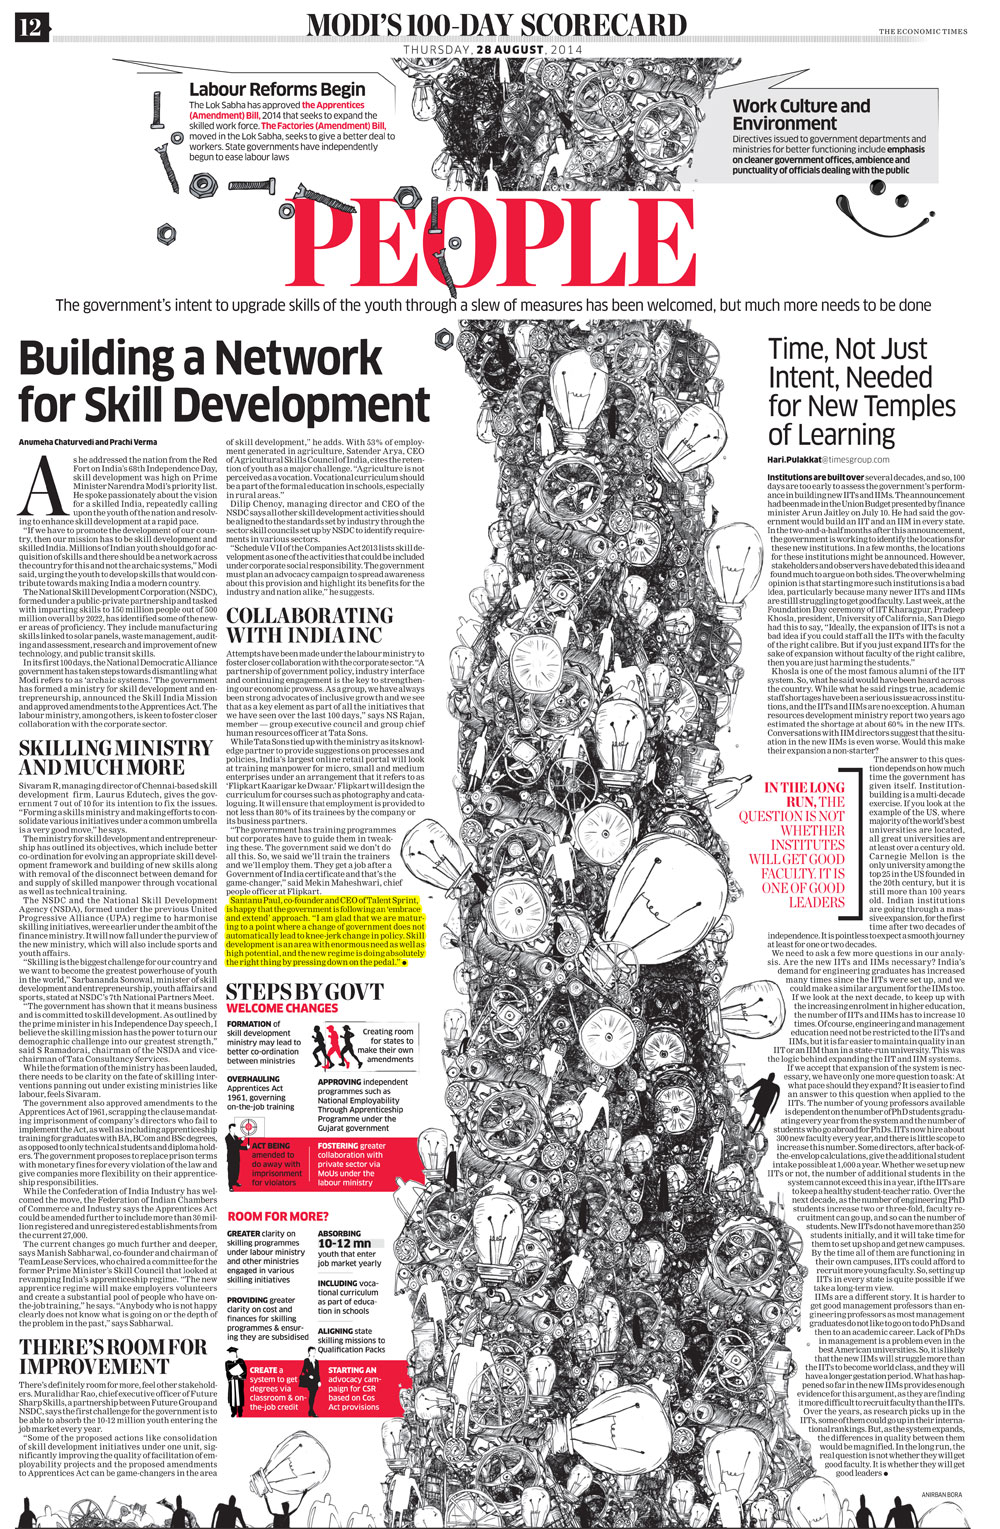 Building a Network for Skill Development